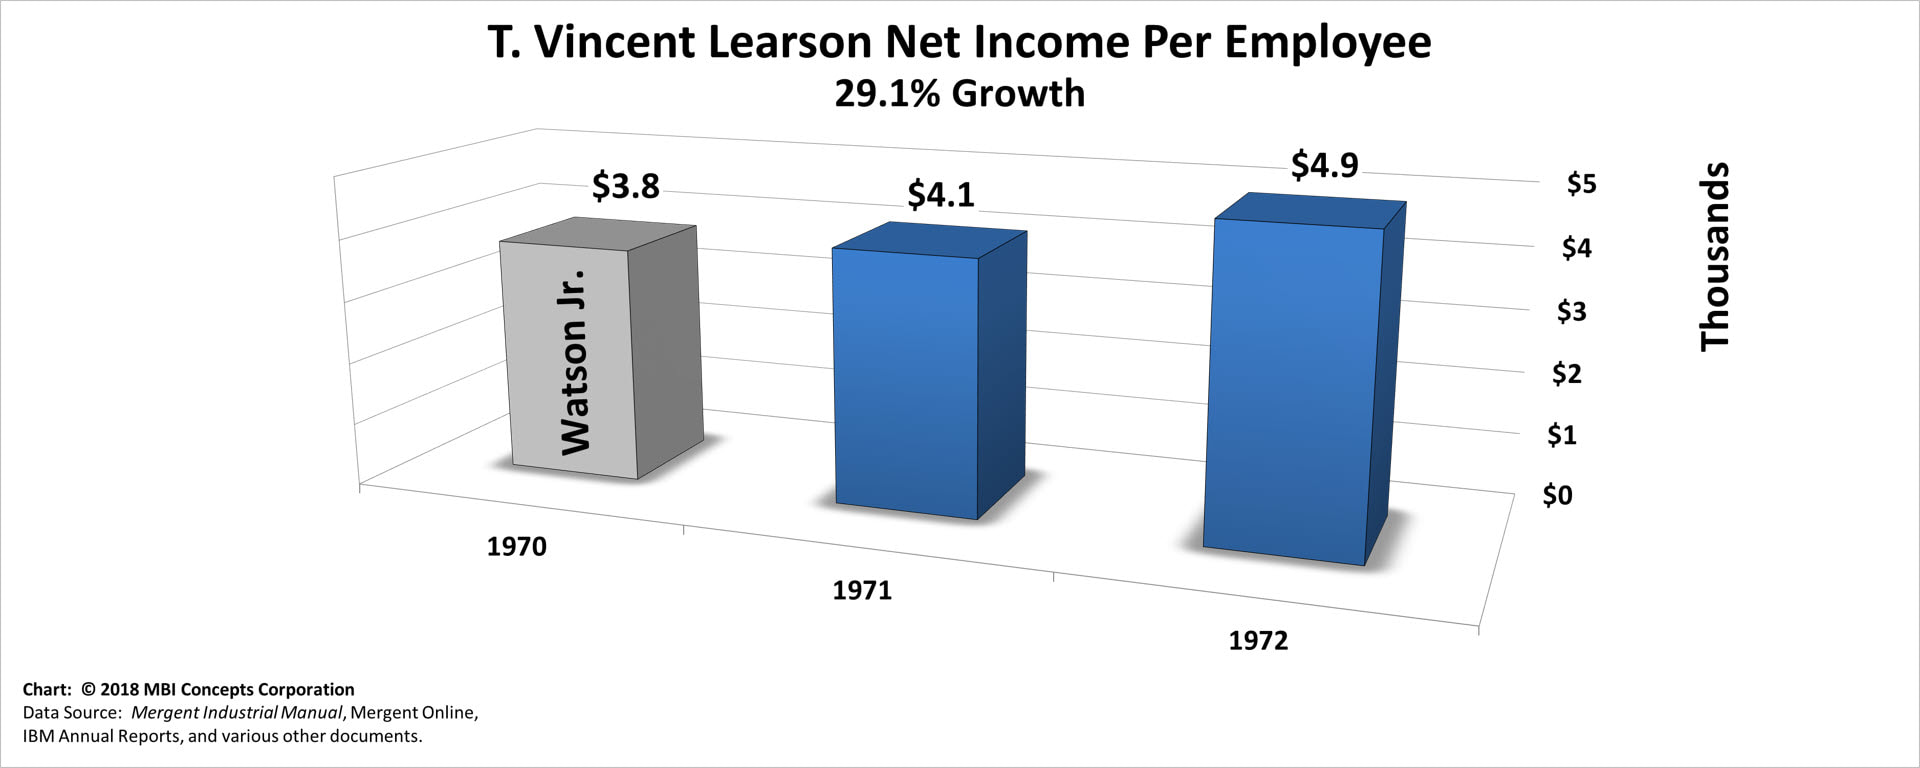 Bar Chart of T. Vincent Learson's Yearly Net Income per Employee over his 18 months as IBM's CEO from 1971 to 1972